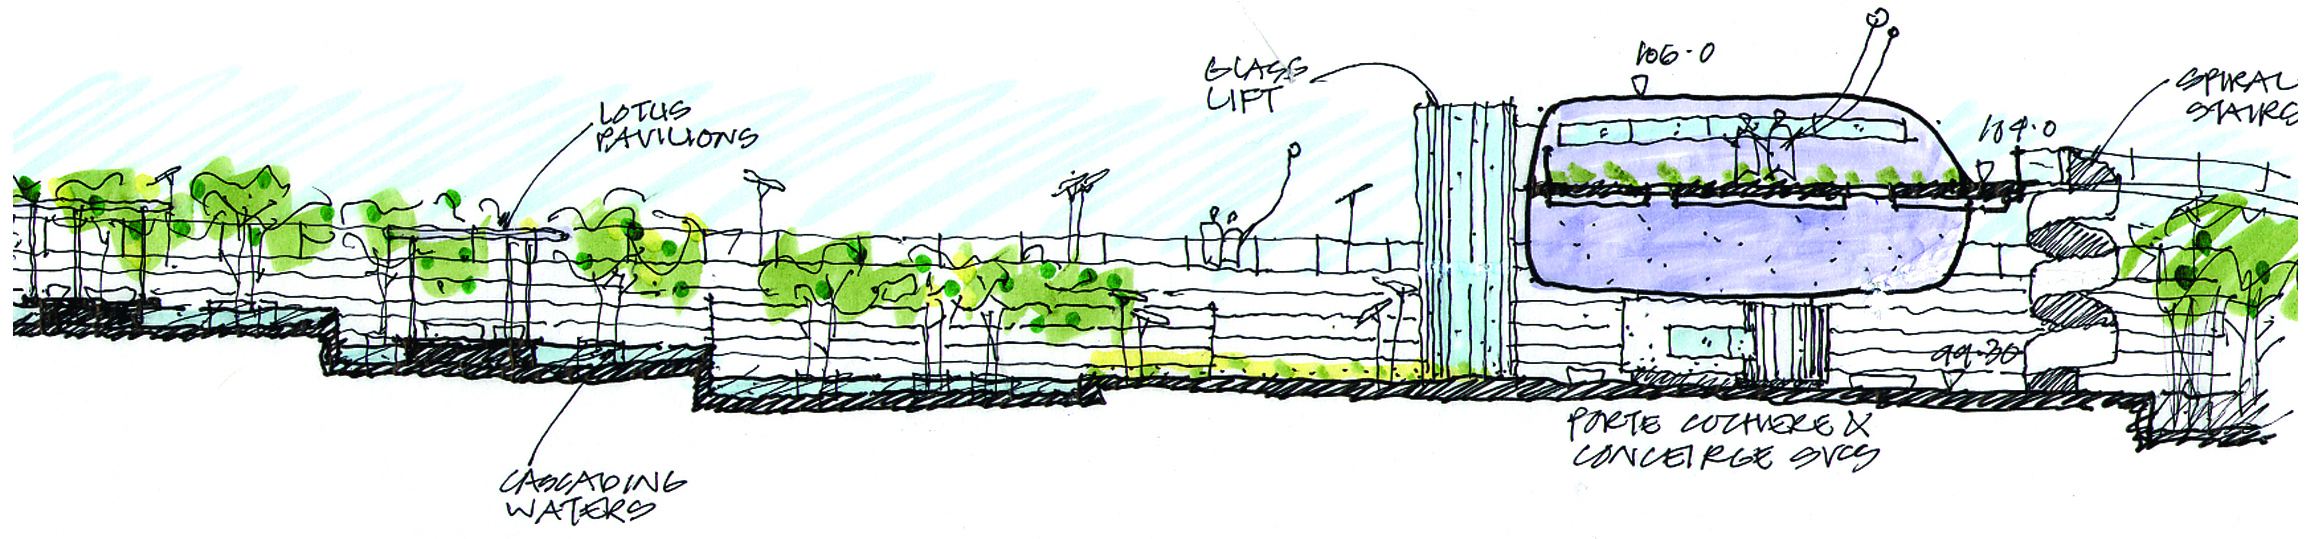 11 TC CONCEPTUAL DRAWING-04